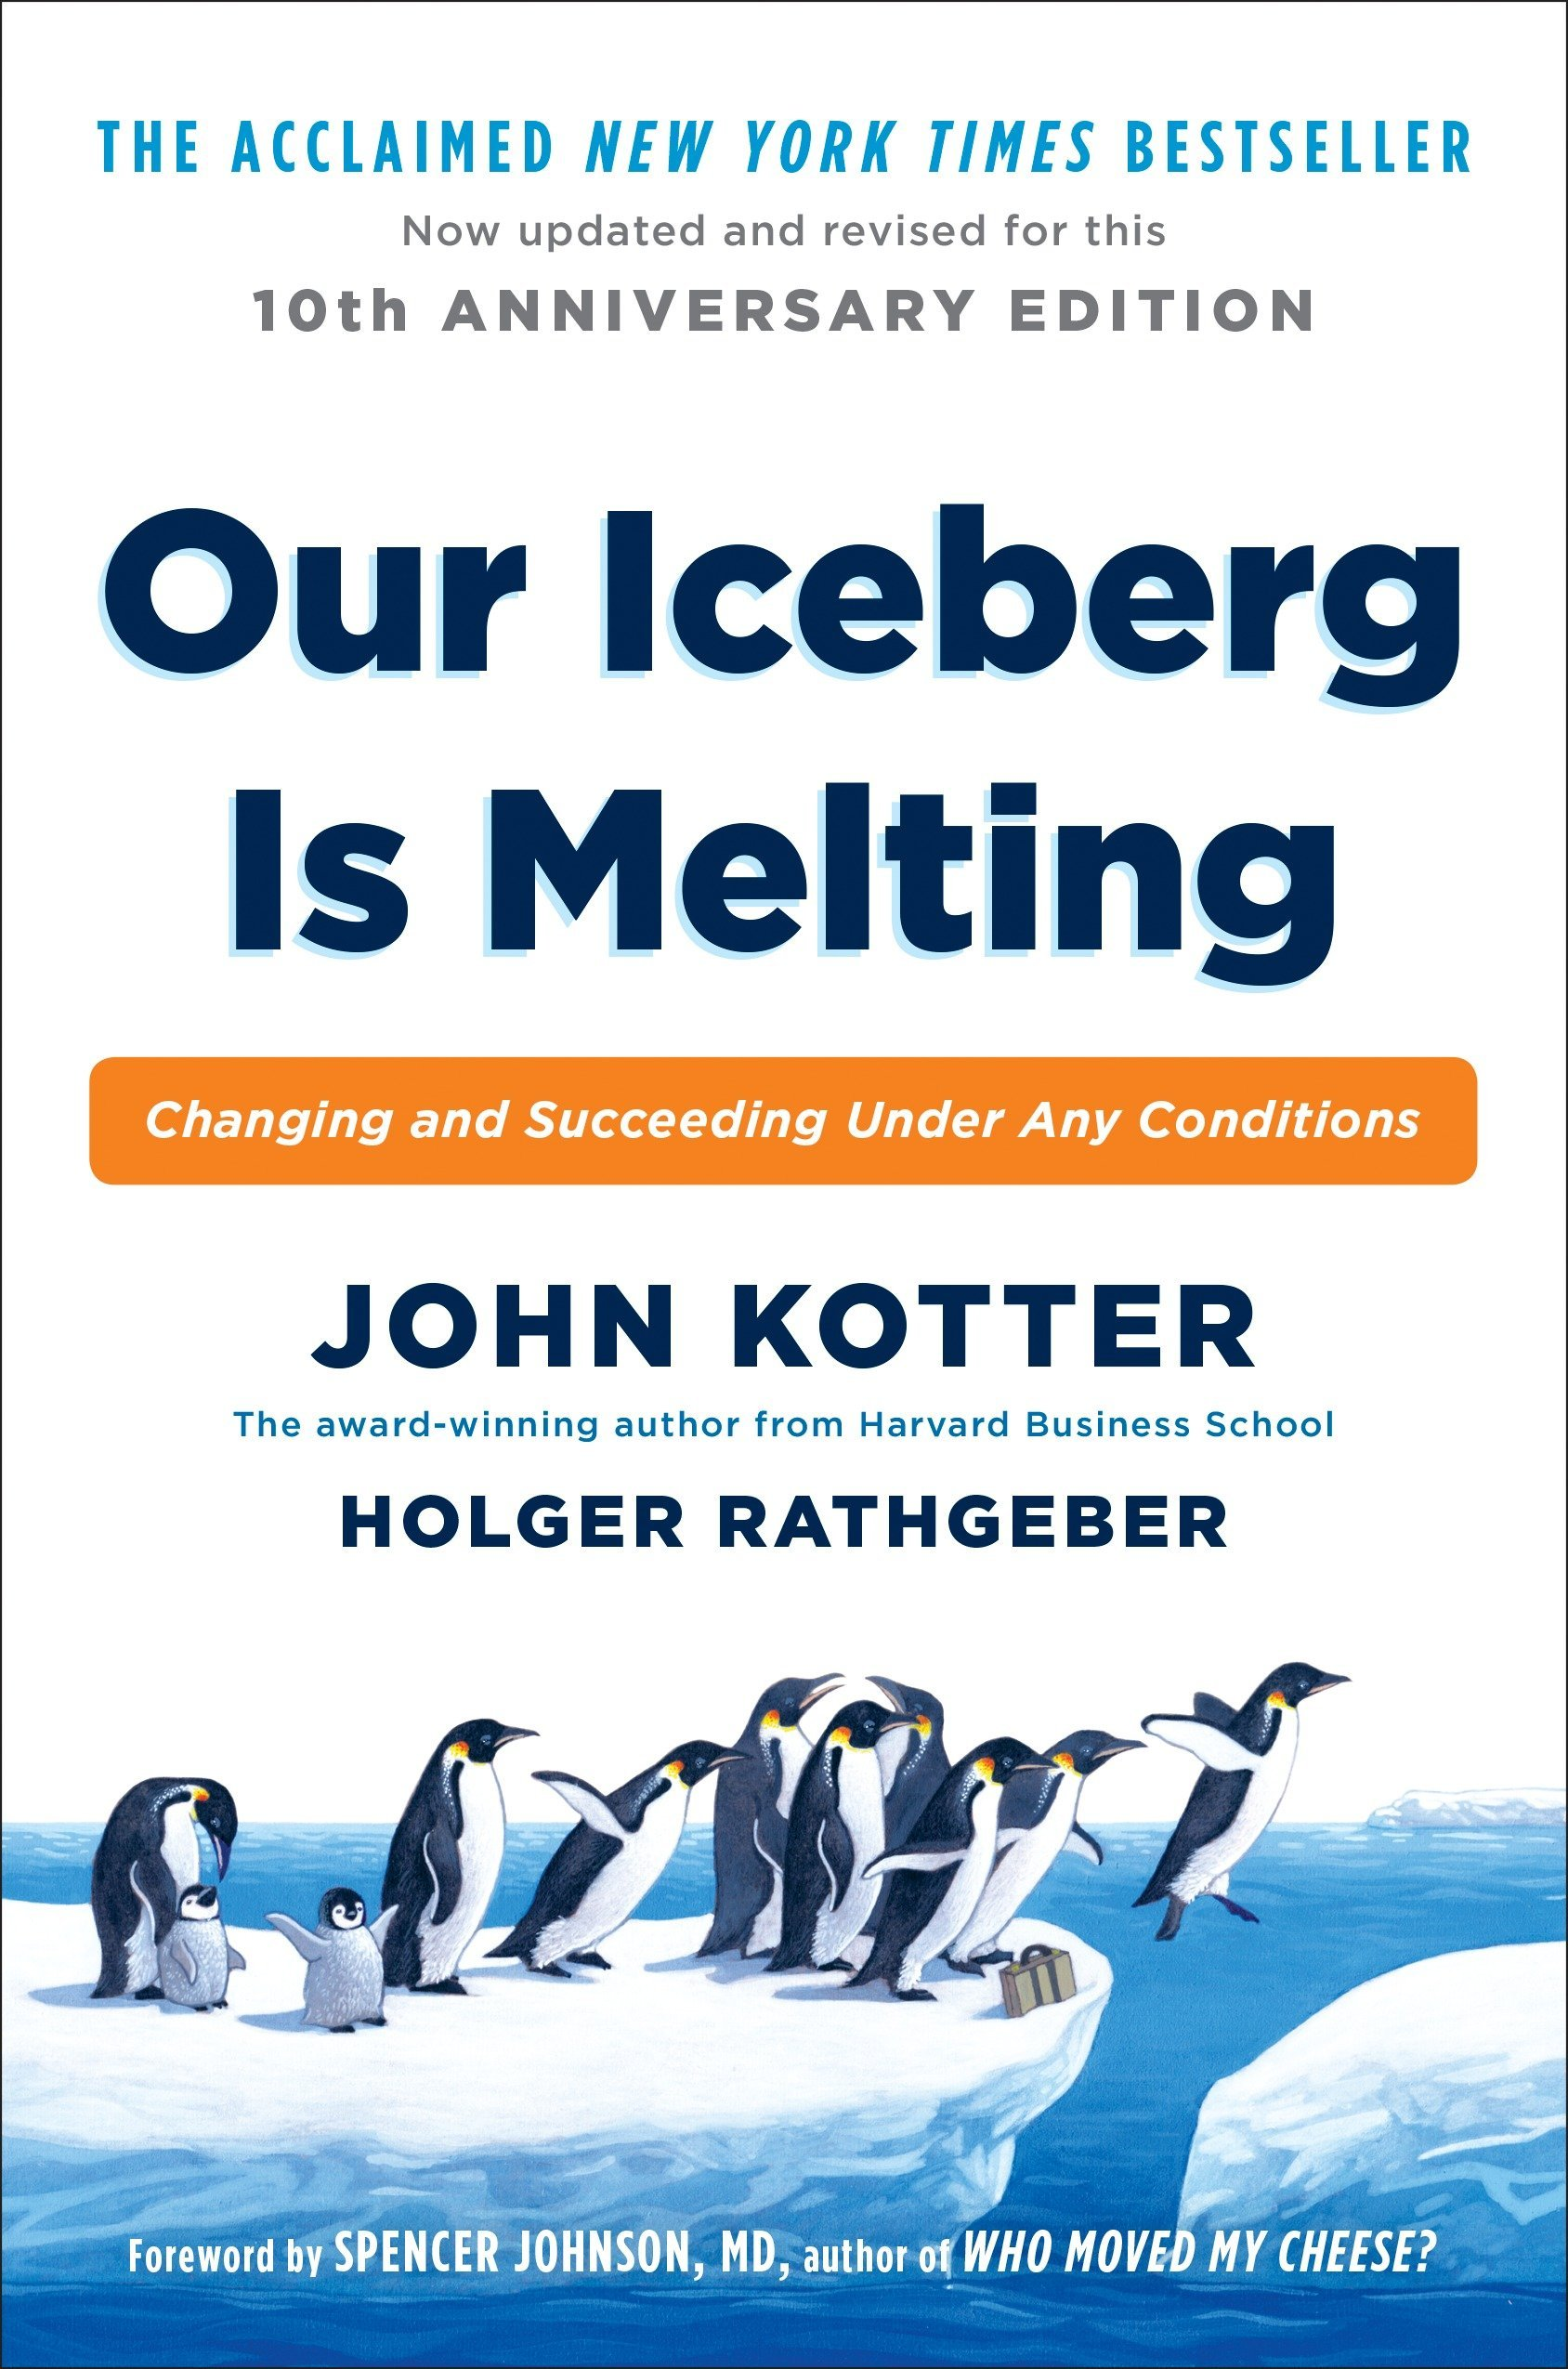 Image result for Our Iceberg is Melting - John Kotter & Holger Rathgeber